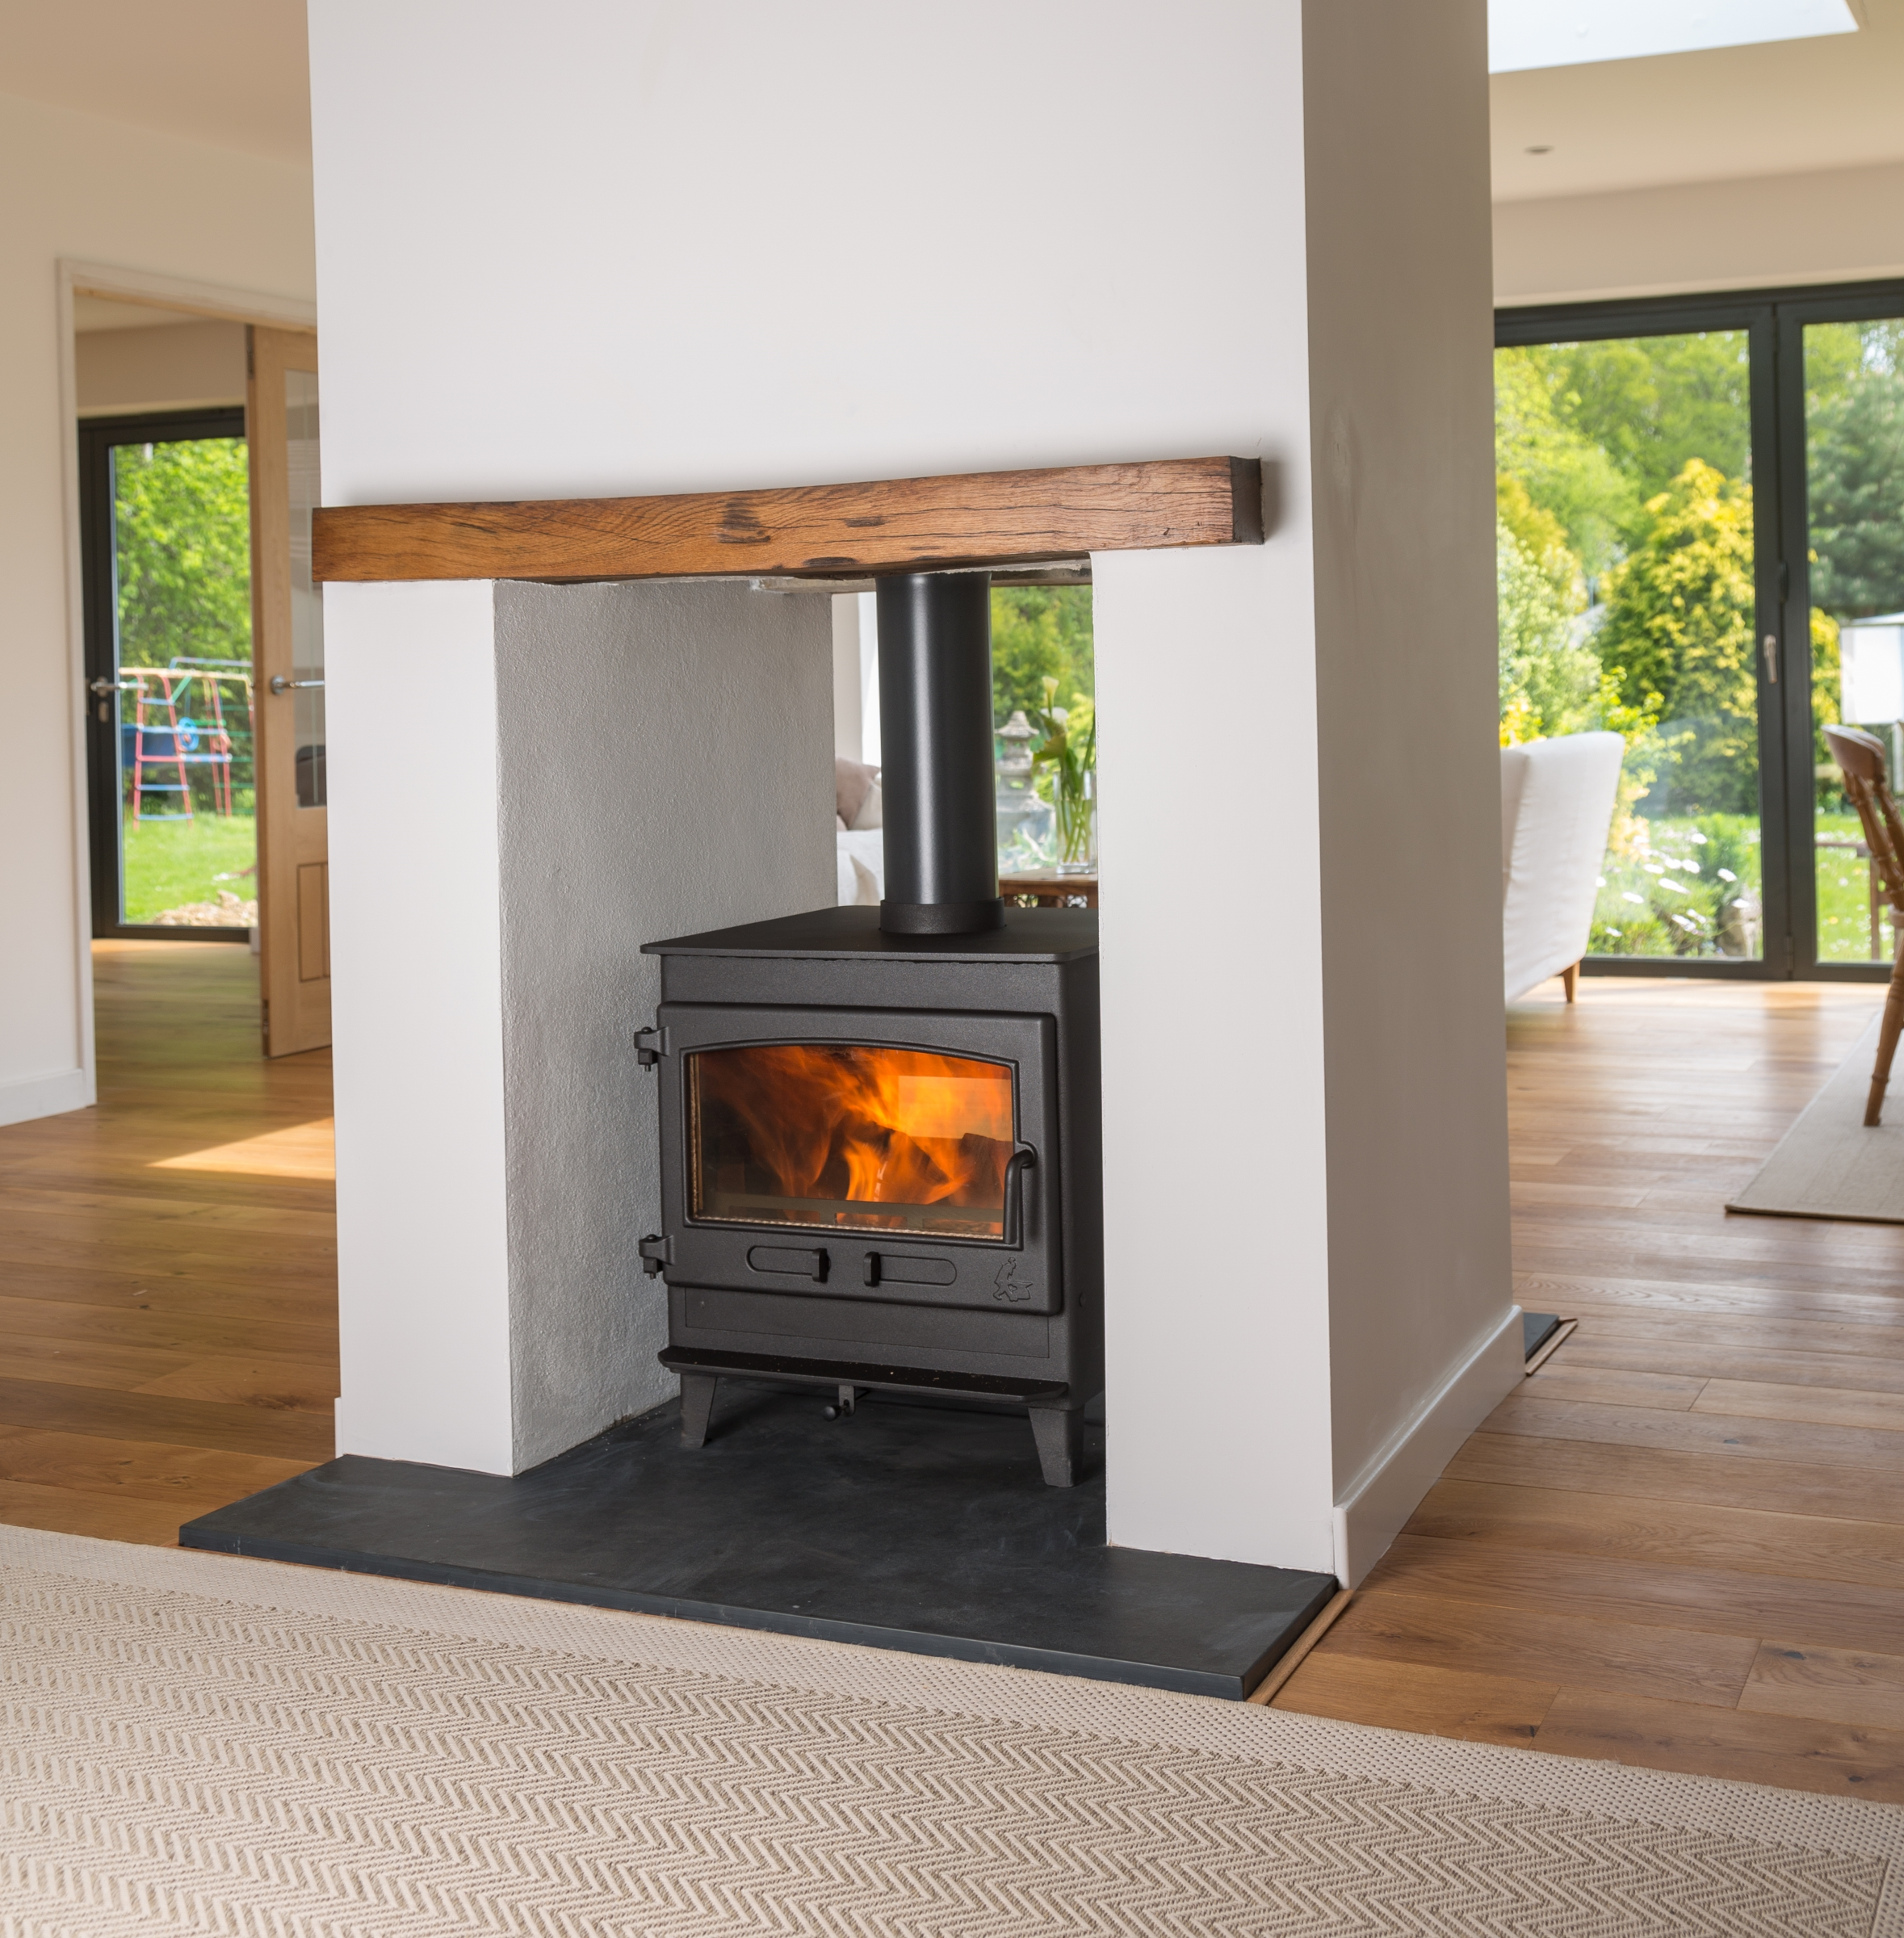 love best fireplace warm enough entire small i heat beach and houses criehaven wood hearth stone pinterest of stove gives burning local its stones to floor images the off river thepeteies pebbled cottage mors on diminutive